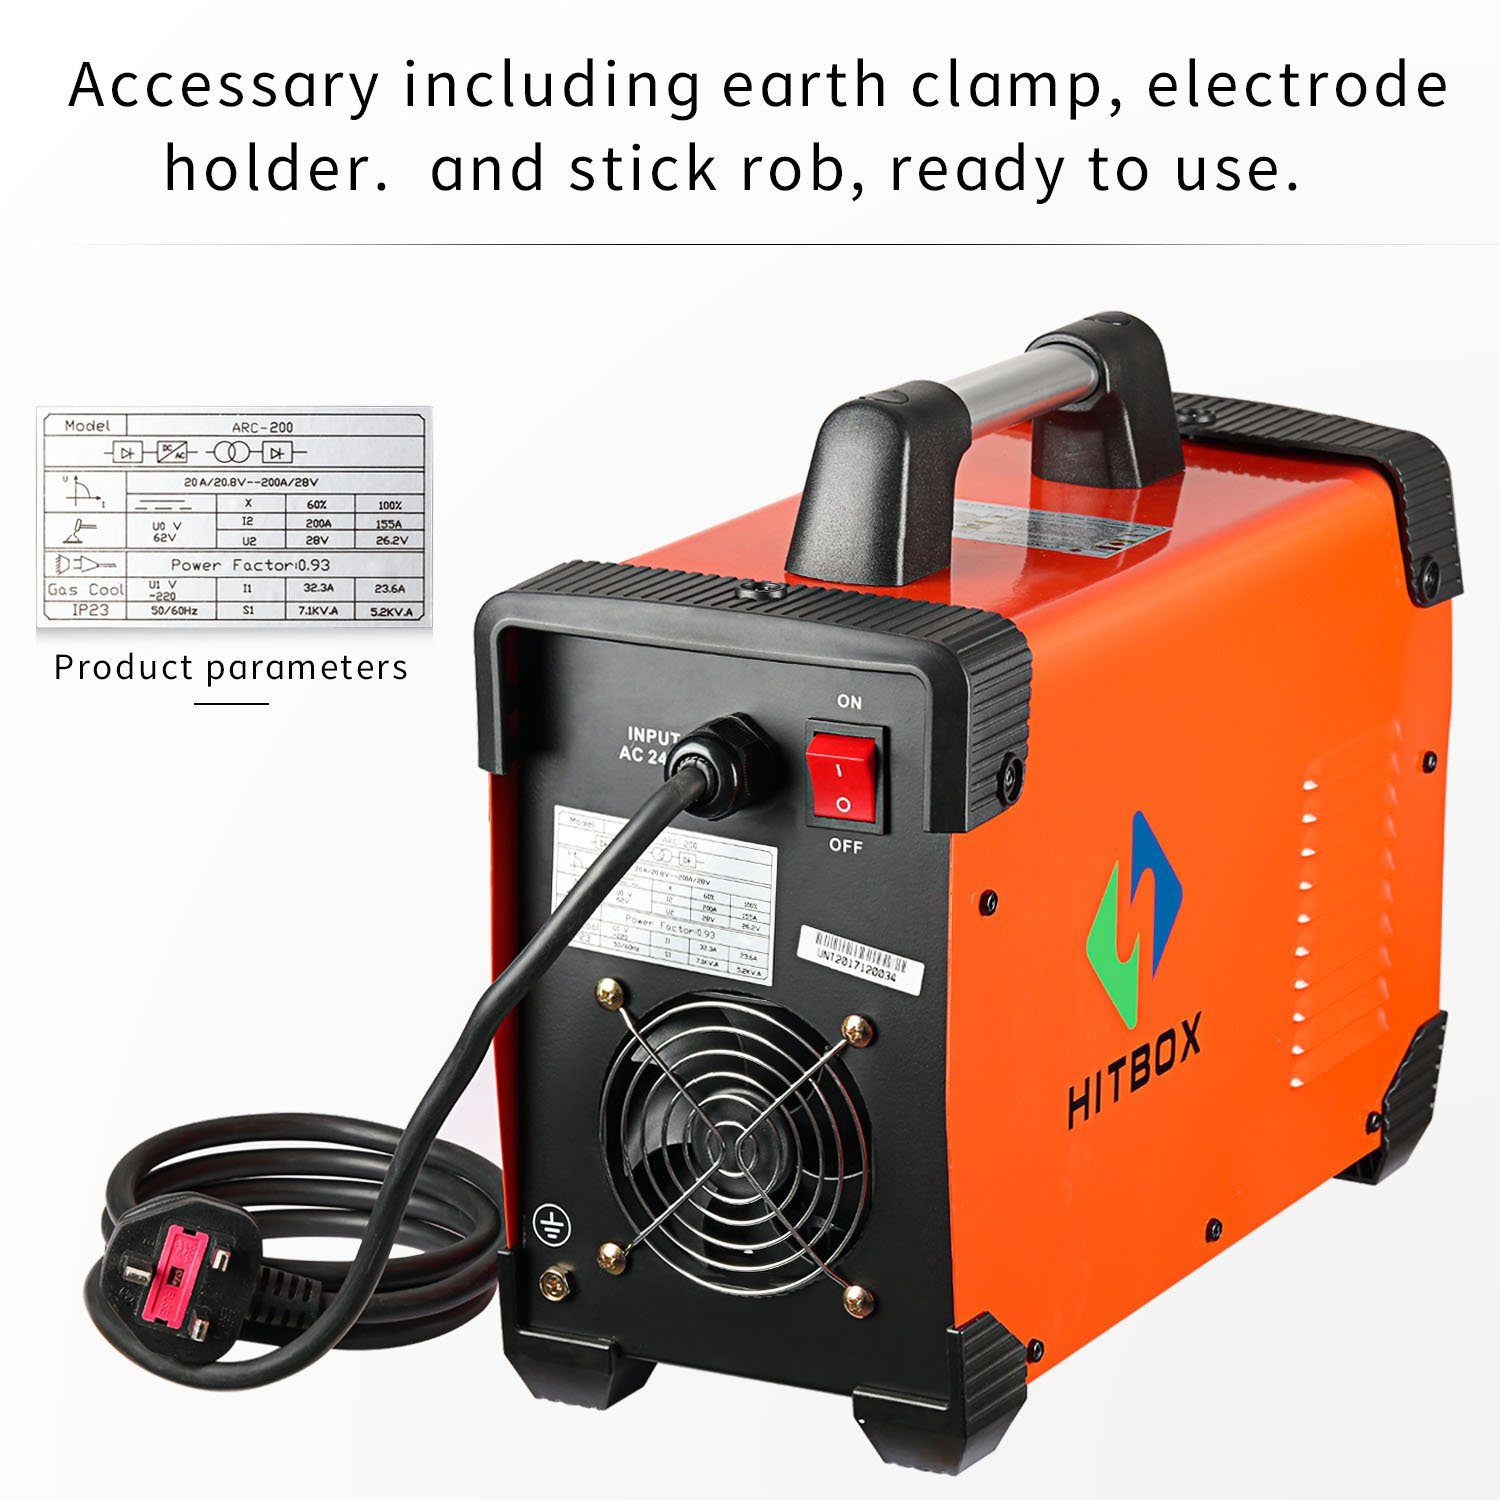 Stick Welder Arc 200 180a Igbt Mma Dc 220v Circuit Of Welding Inverter Arc200 View Machine With Earth Clamp And Electrode Holder Automotive